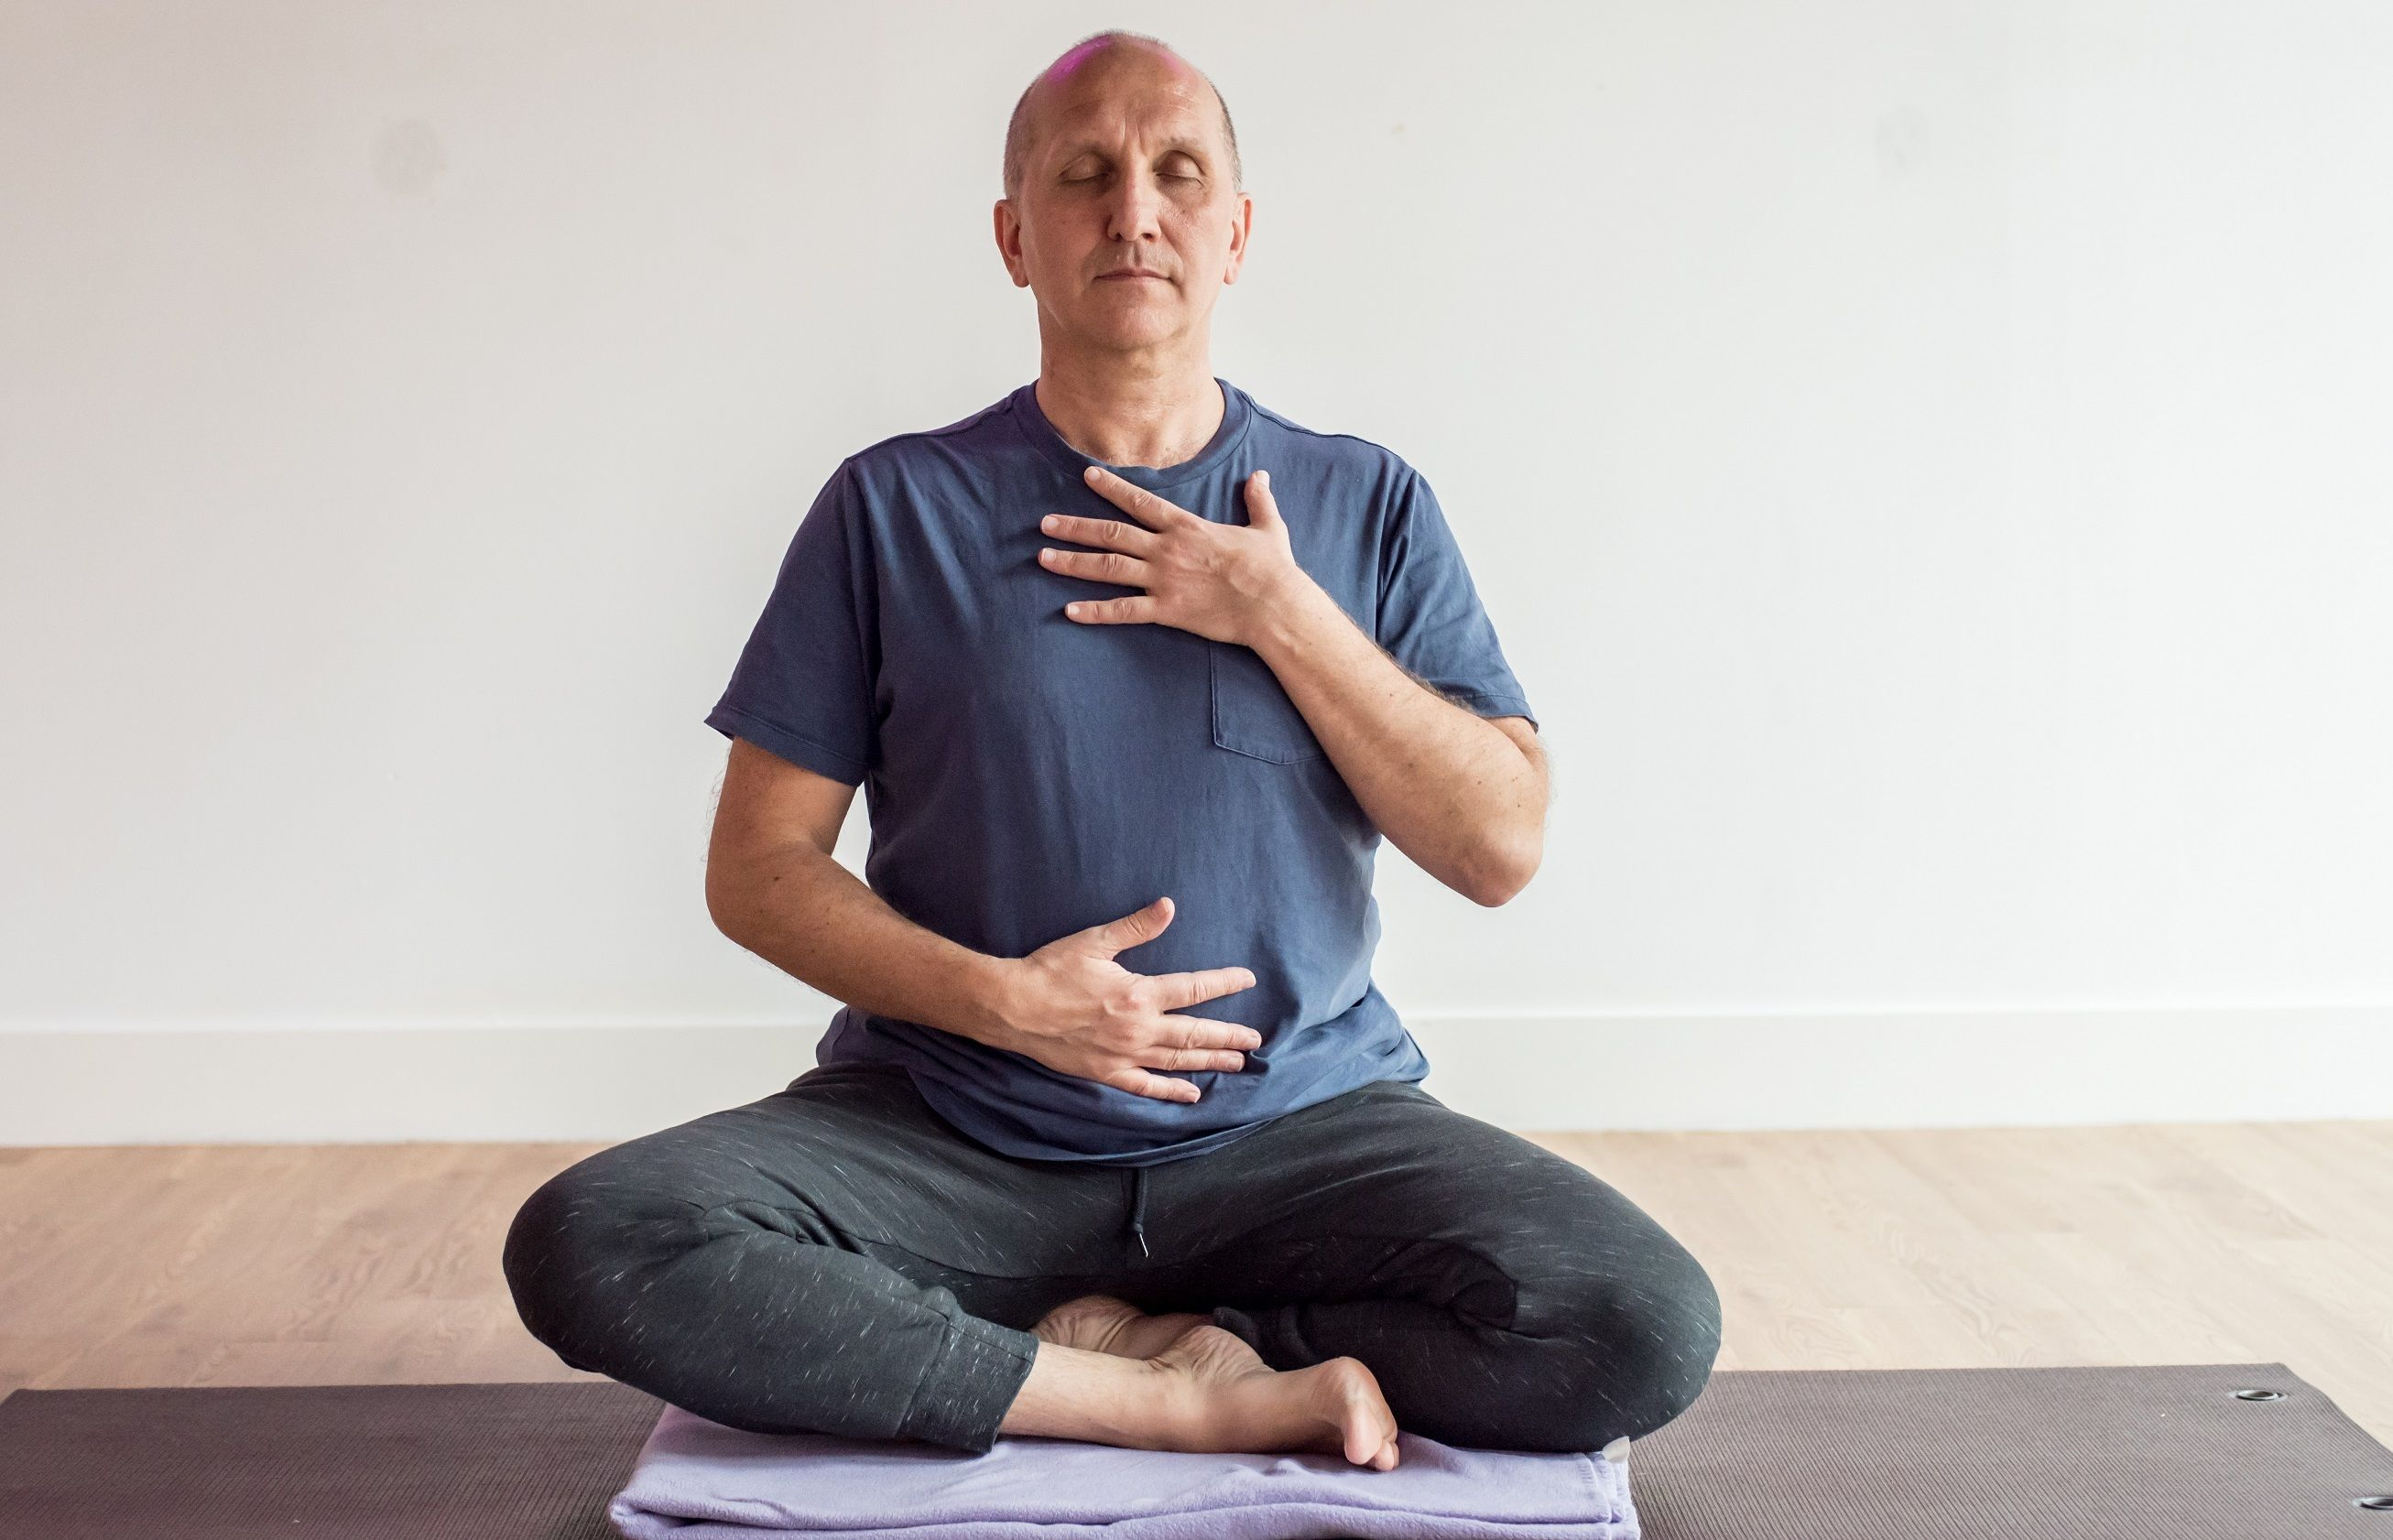 Laurent-Yoga-breathwork-for-stress